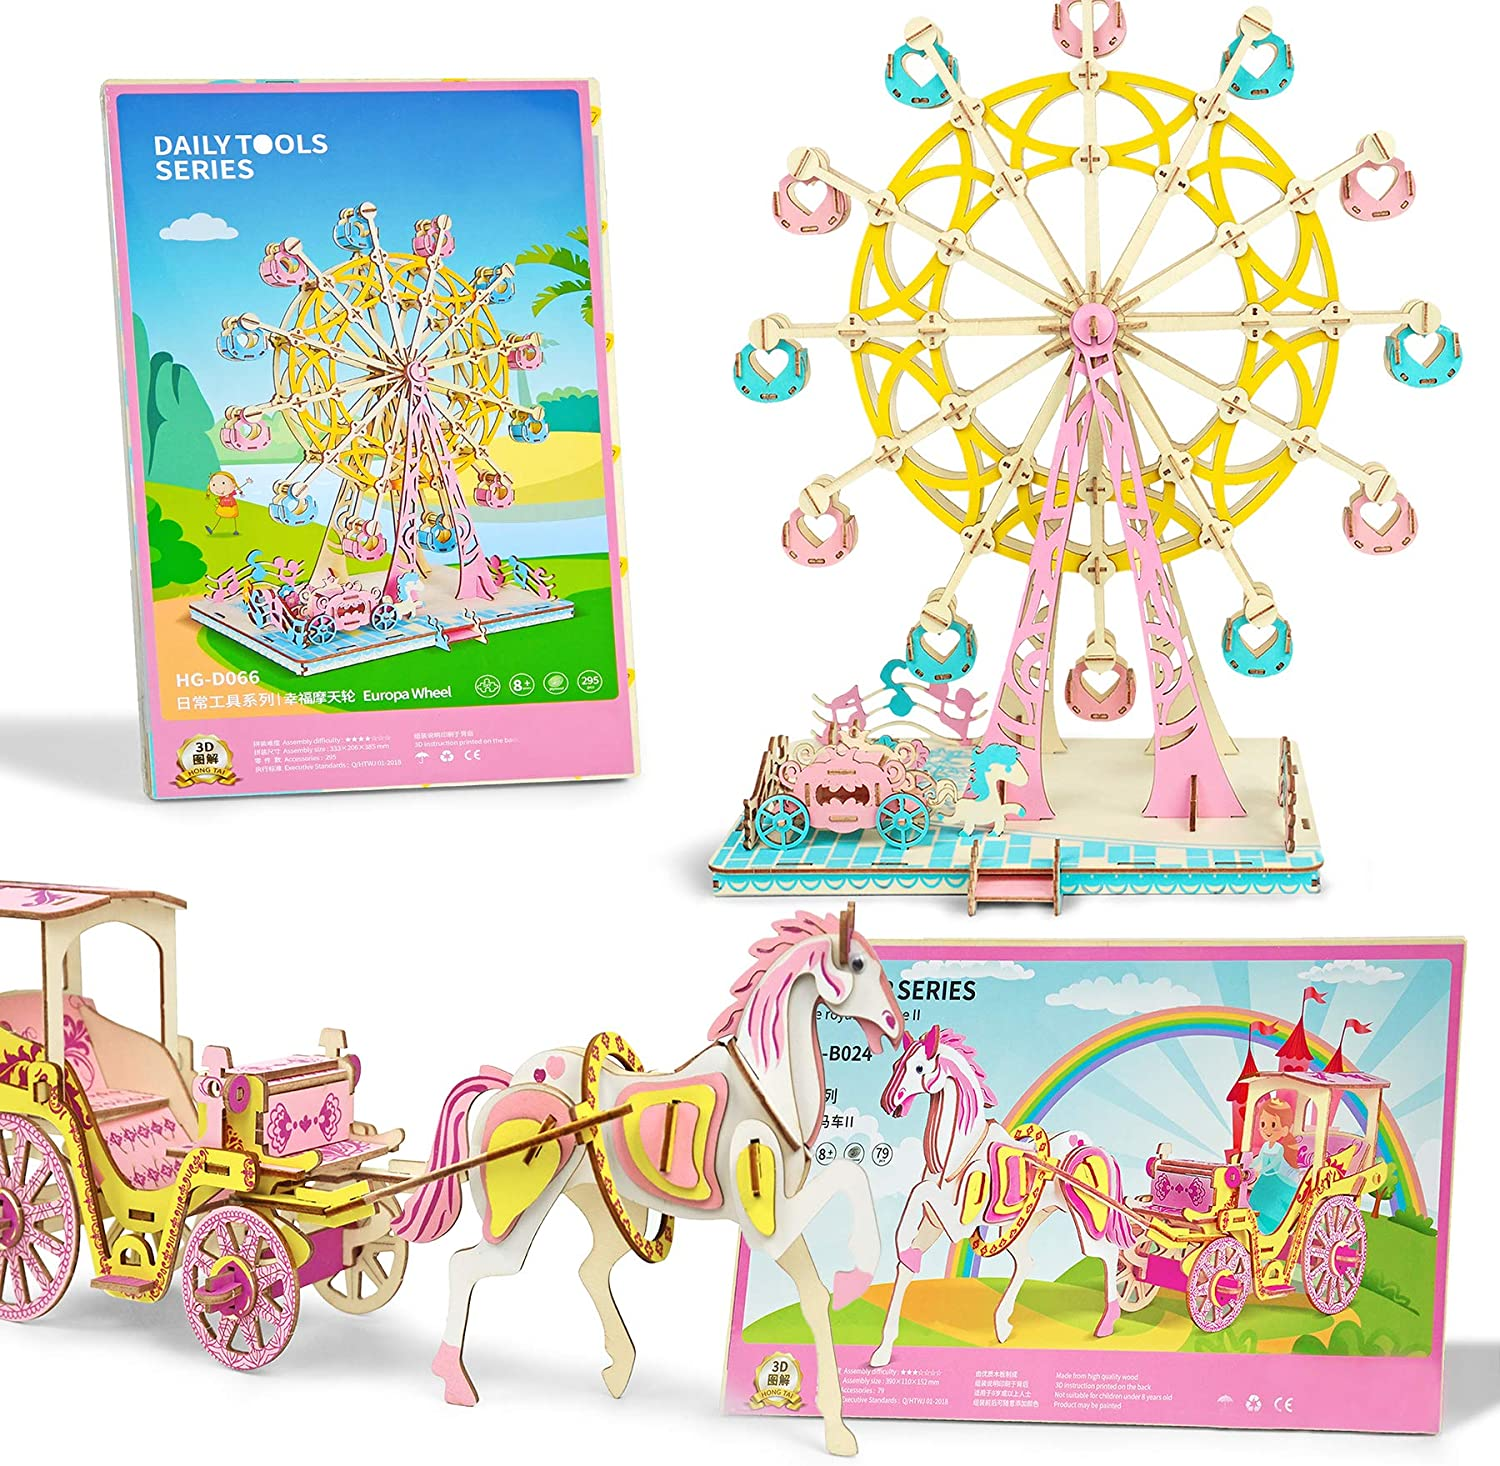 3D Wooden Puzzle DIY Ferris Wheel Puzzle 3D Jigsaw Model Gifts for Kids and Adults 295 PCS